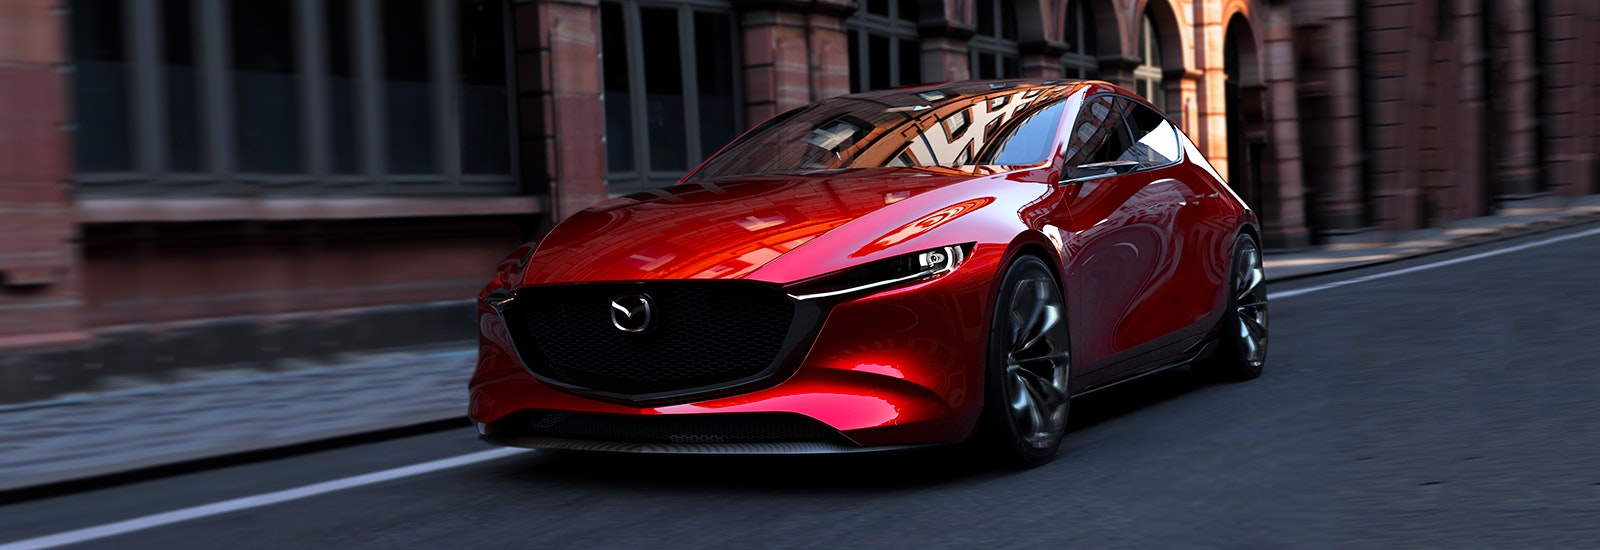 2019 Mazda 3 price, specs, release date | carwow